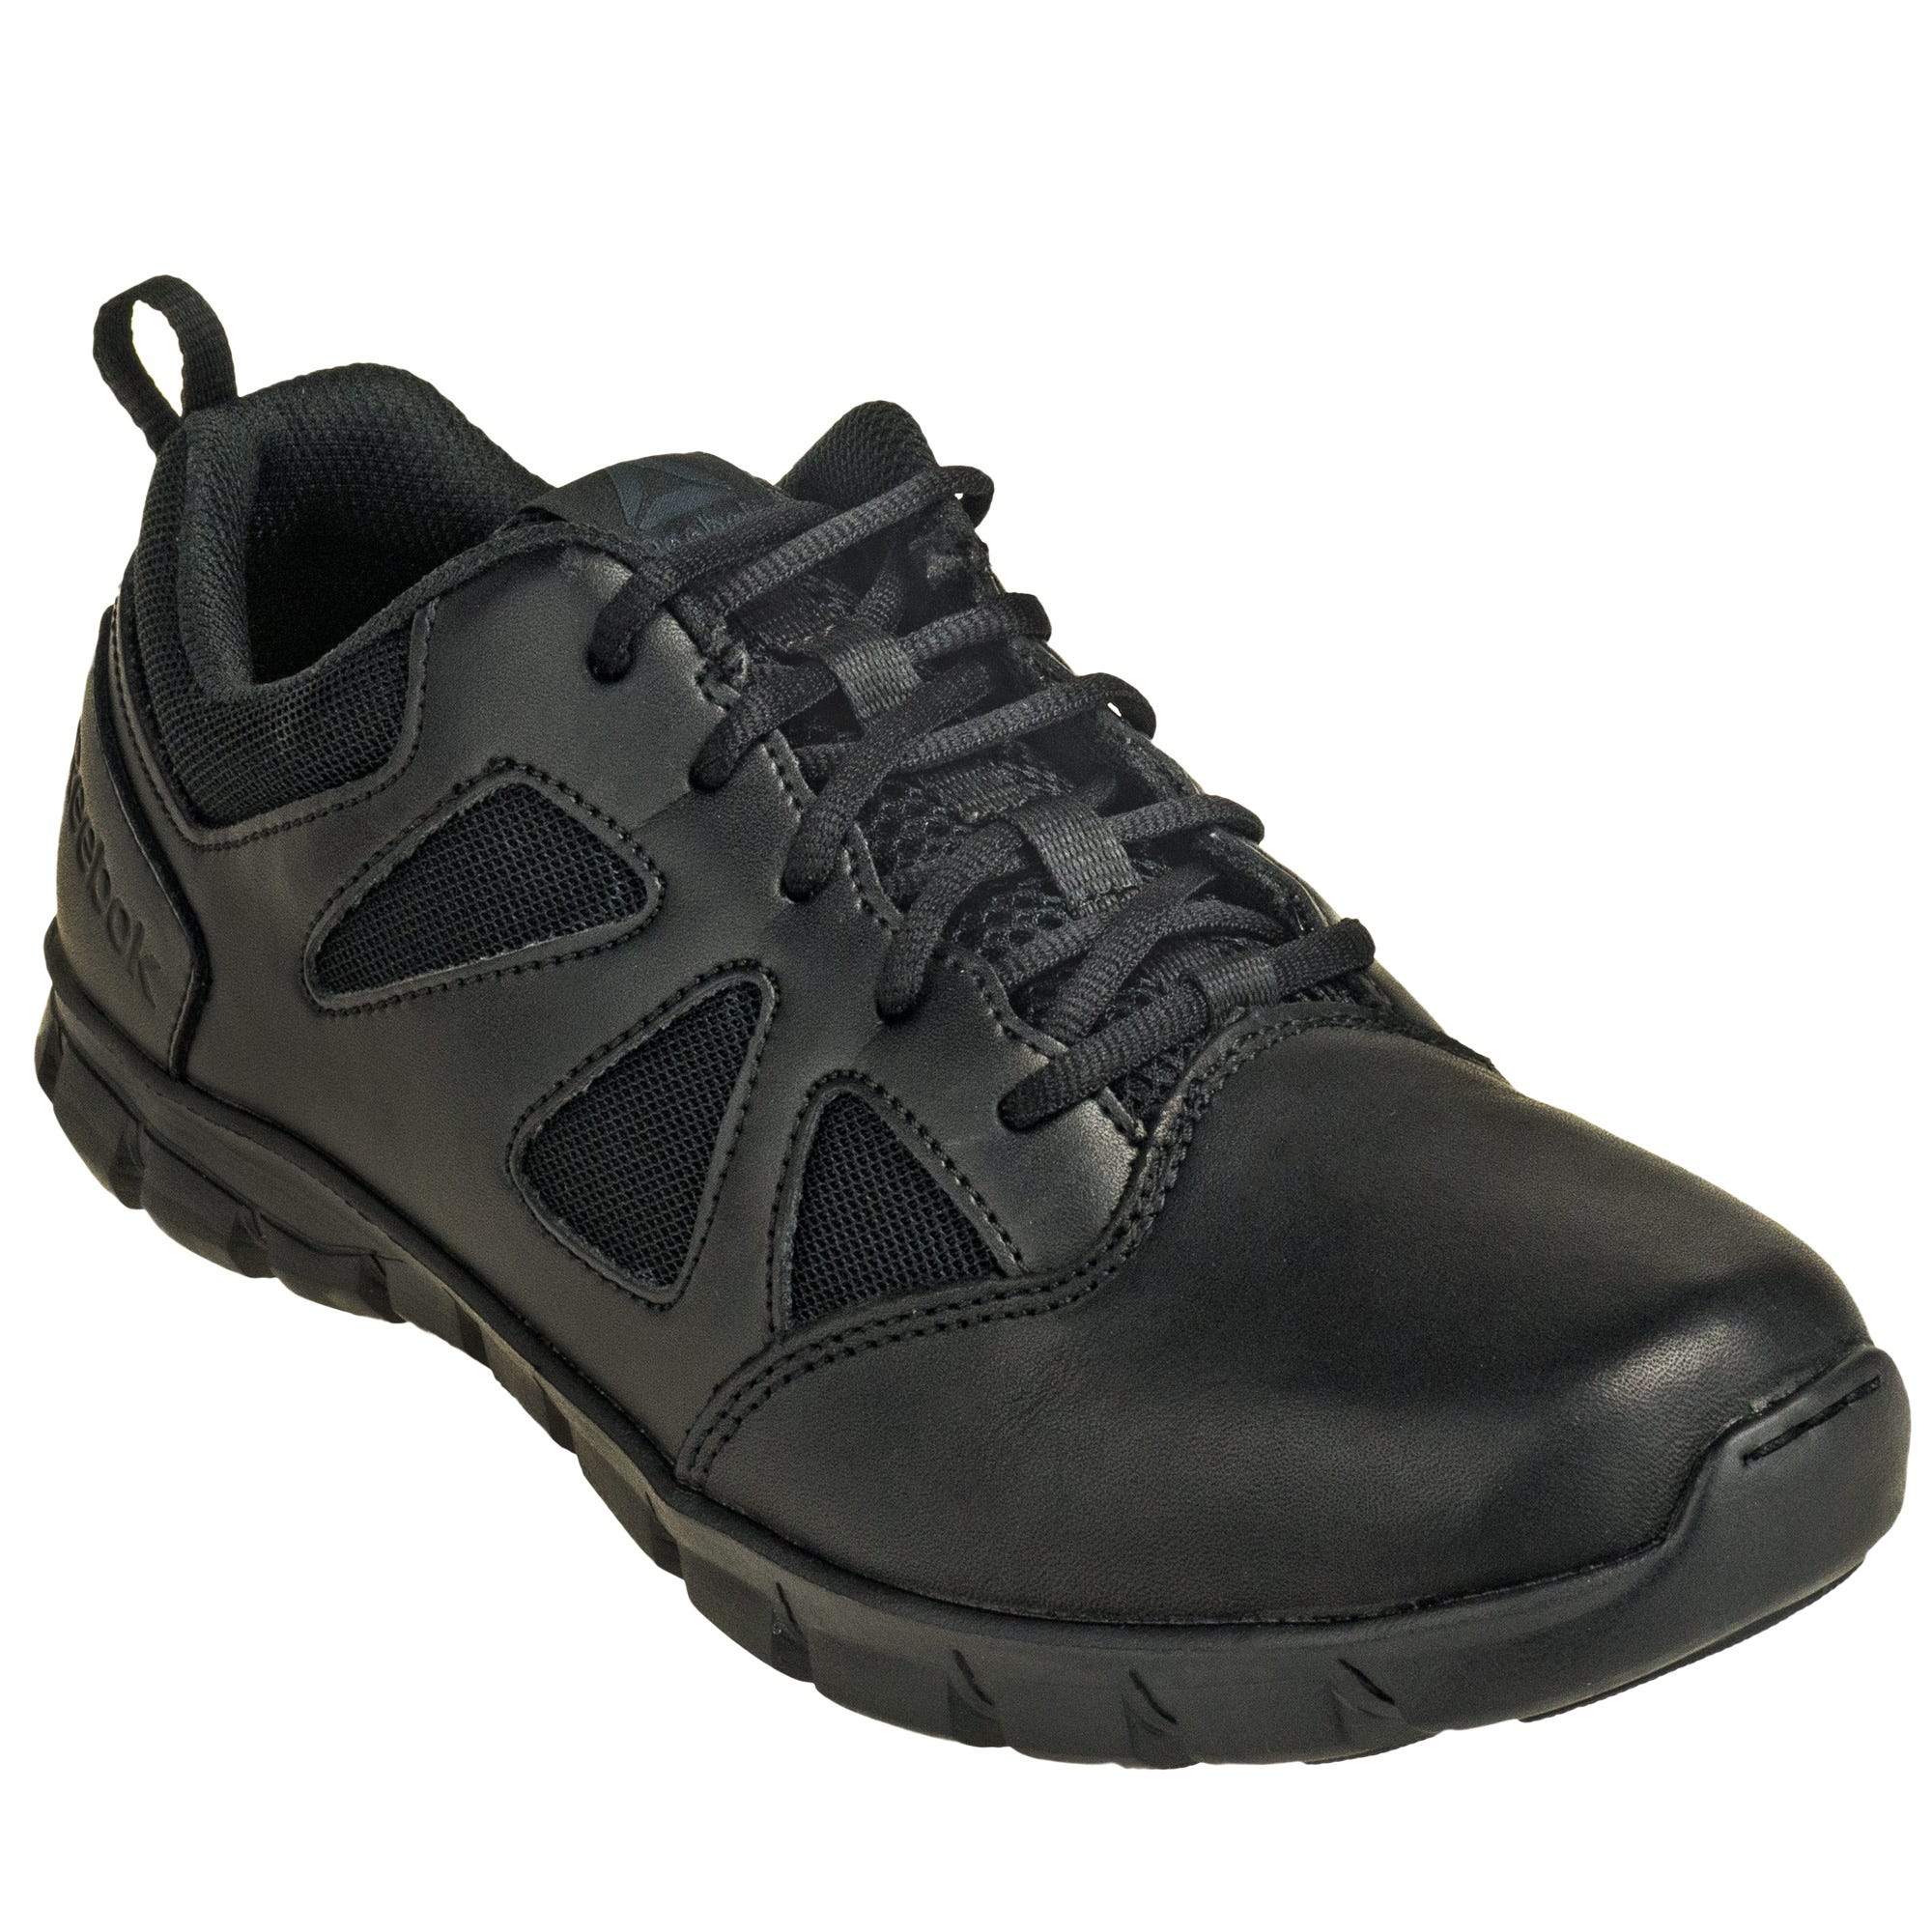 Reebok RB8105 Sublite Cushion Black Non-Metallic Tactical Oxfords